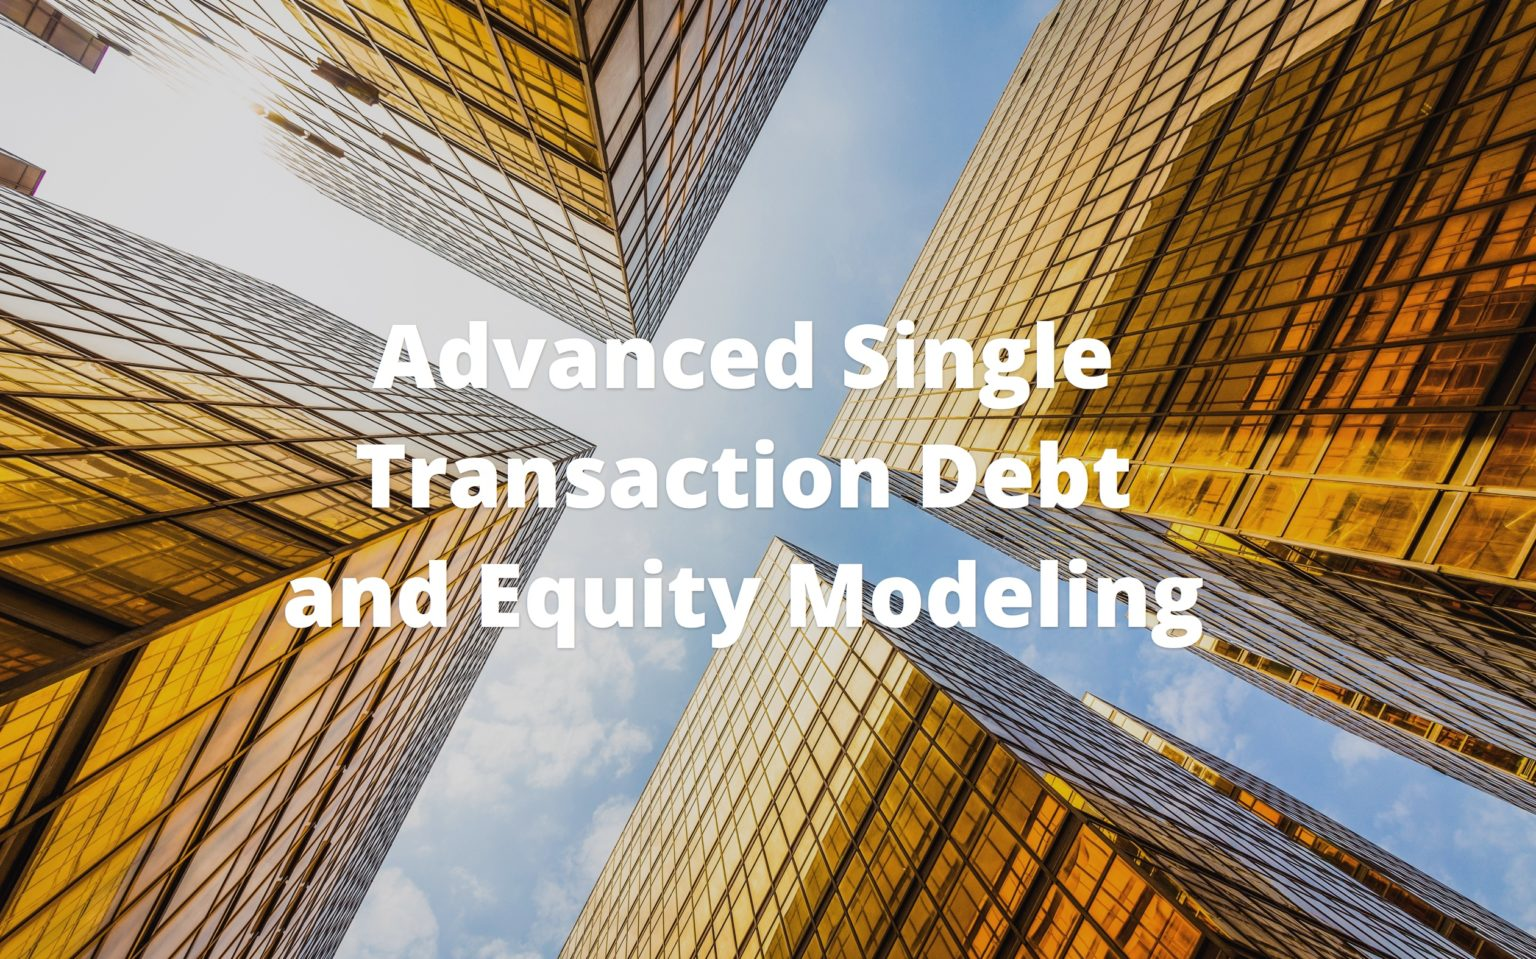 Advanced Single Transaction Debt and Equity Modeling